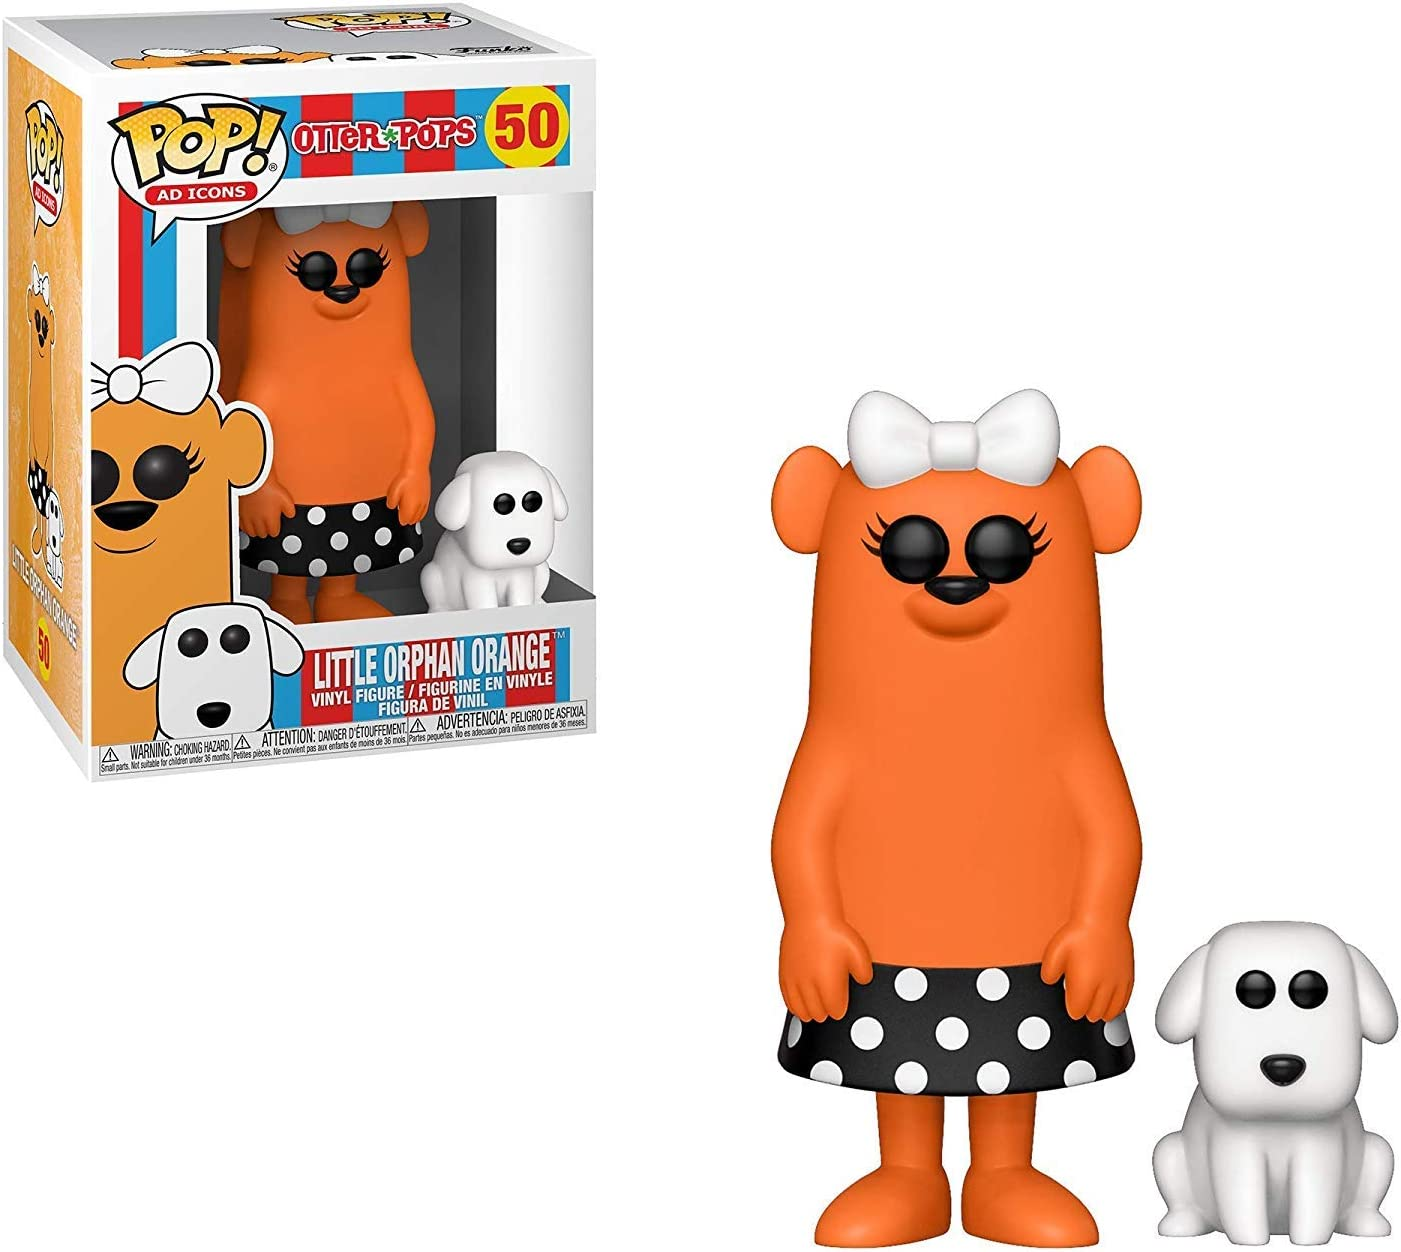 2019, Toy NUEVO Ponch Punch Ad Icons: Otter Pops Funko Pop